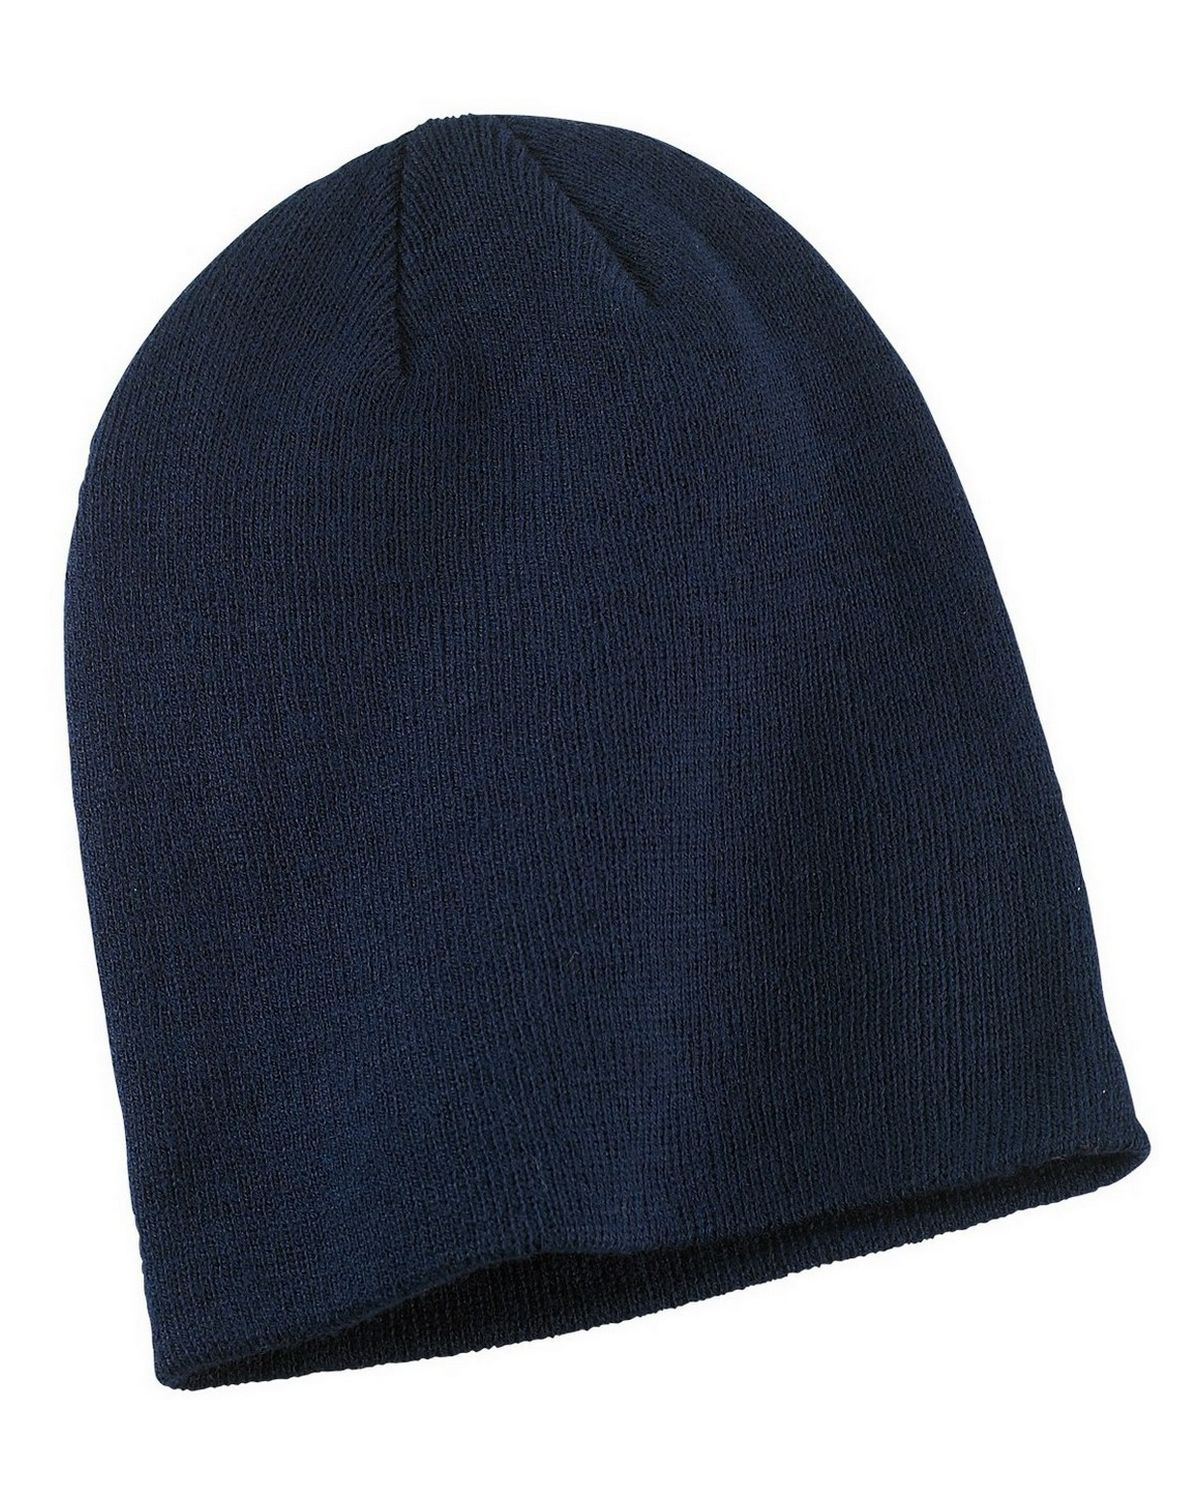 Big Accessories BA519 Slouch Beanie - Royal - One Size BA519